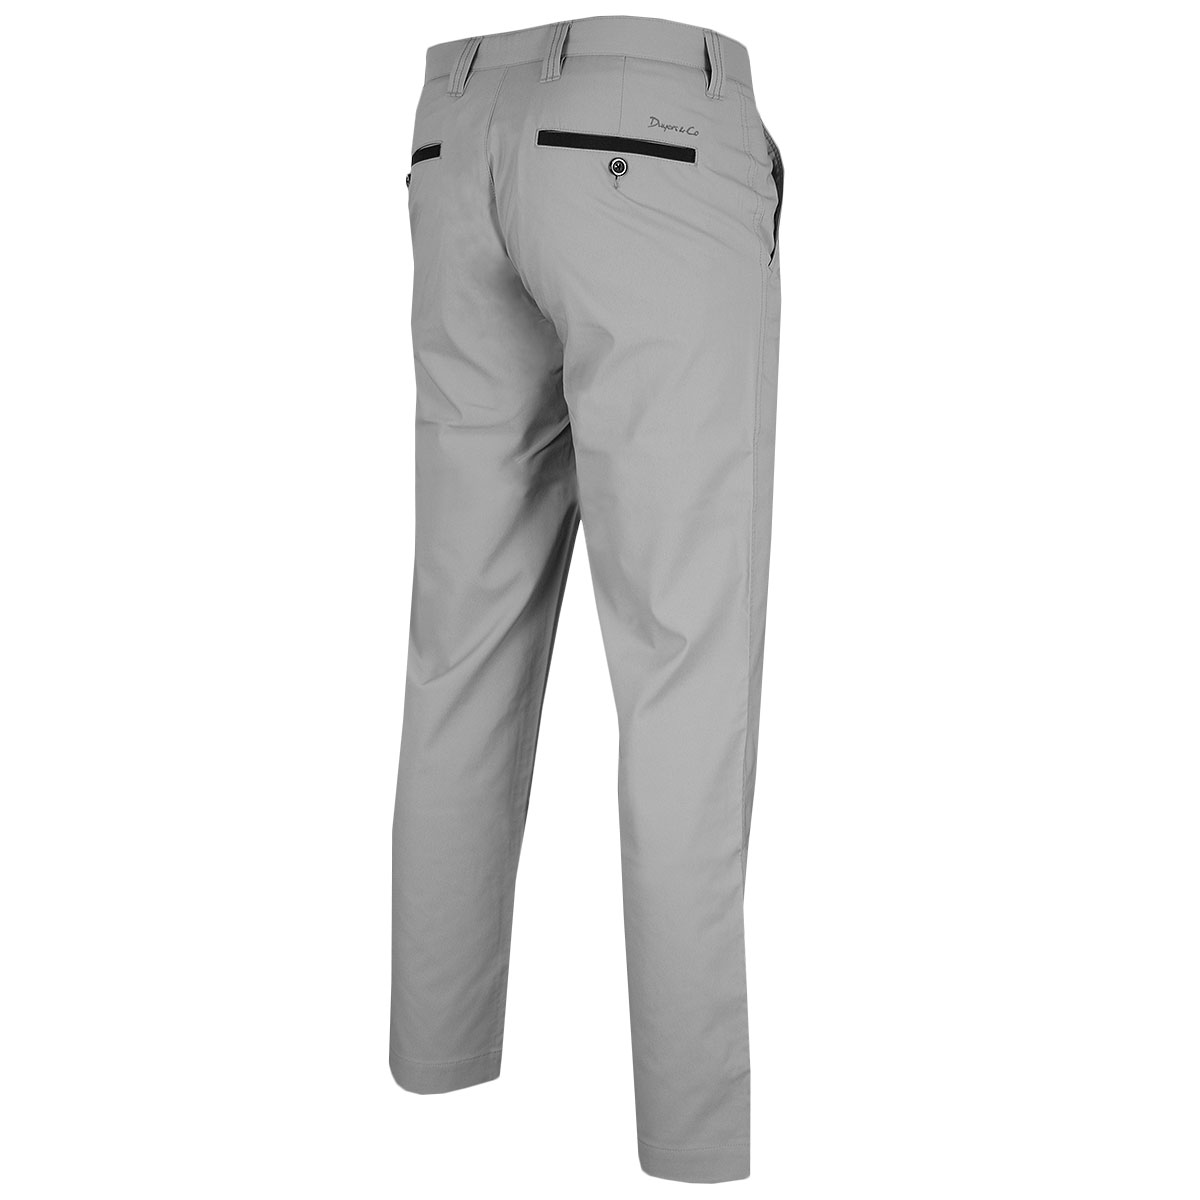 Dwyers-amp-Co-Mens-Matchplay-Stretch-Lightweight-Golf-Trousers-38-OFF-RRP thumbnail 35